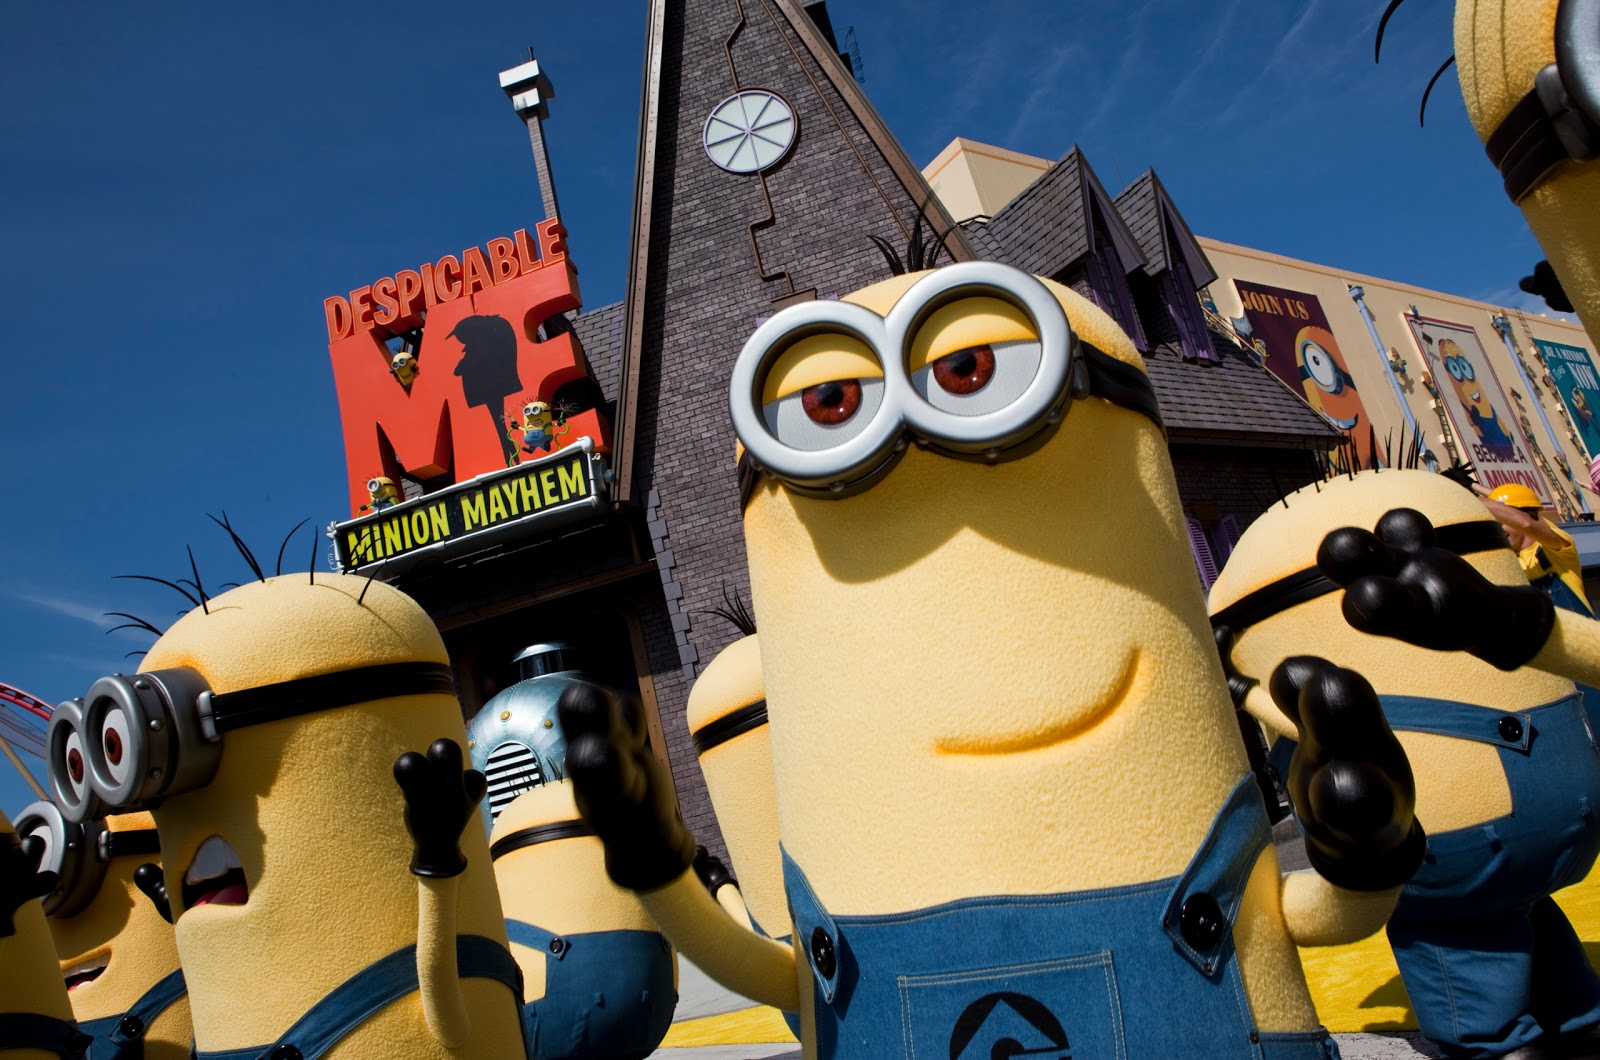 Agnes Despicable Me Hd Wallpapers